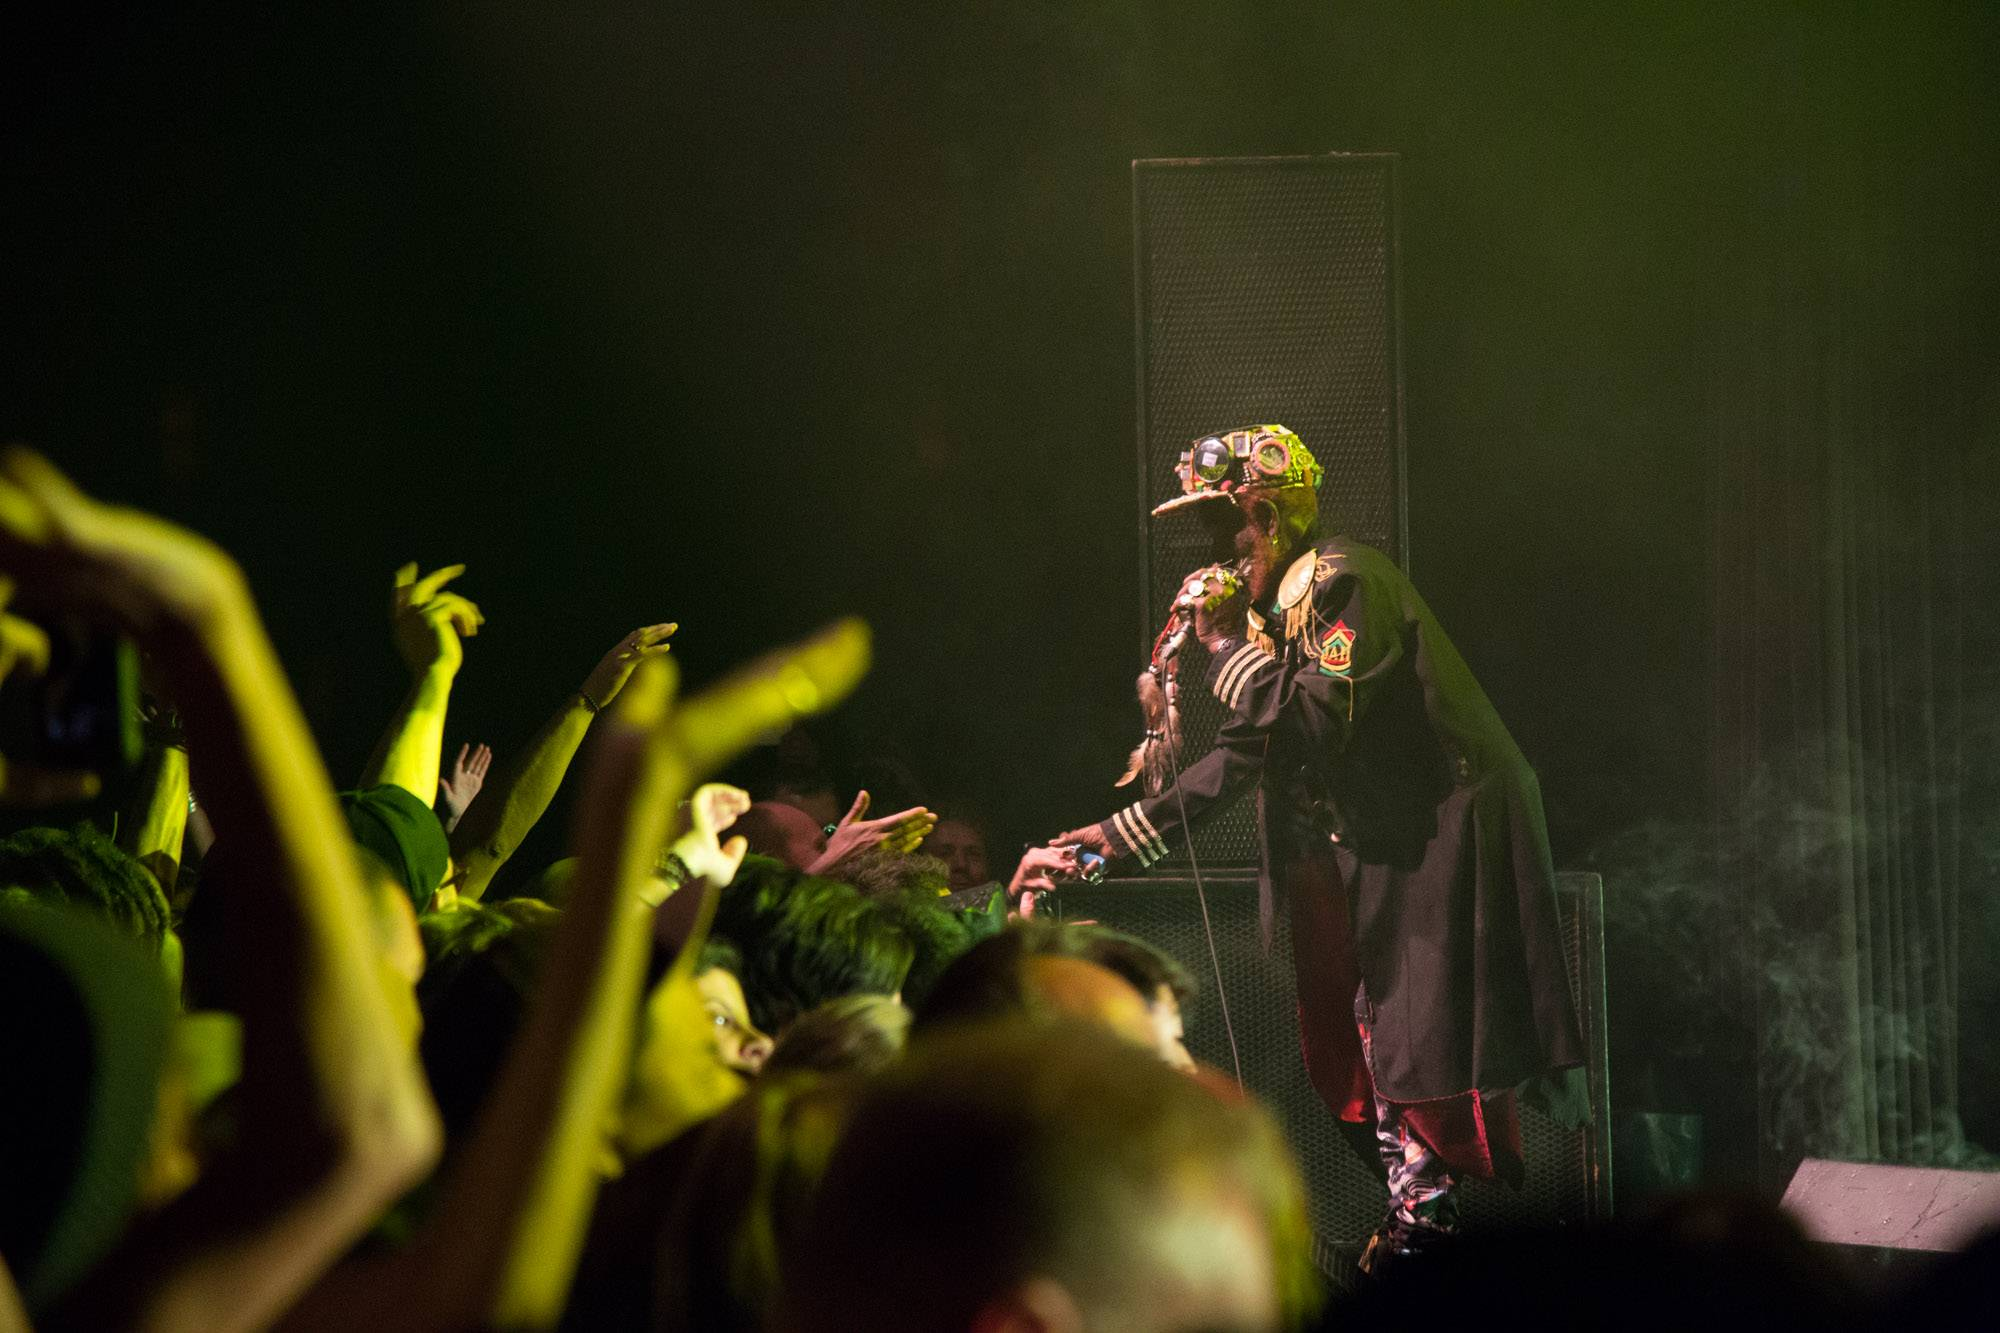 Lee 'Scratch' Perry at the Commodore Ballroom, Vancouver, Sept. 15 2016. Kirk Chantraine photo.